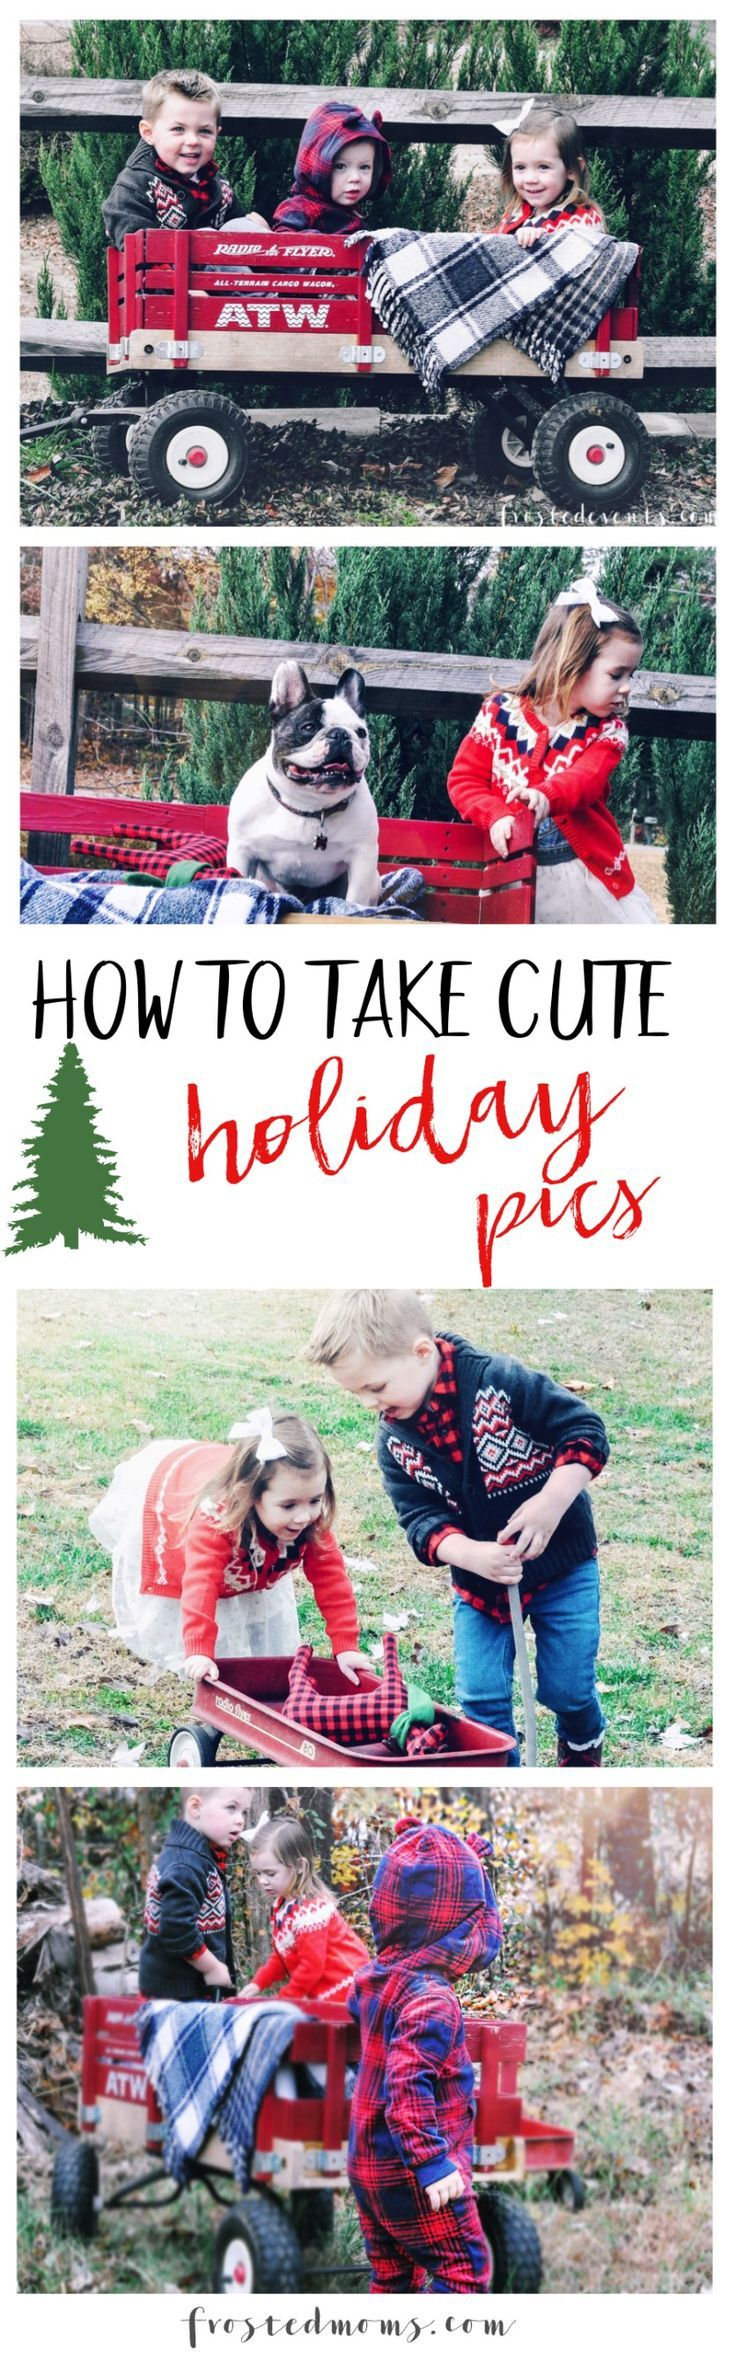 Family Christmas Picture ideas-- How to snap cute holiday pics of your kids. Secrets from how to style holiday outfits with @OshKoshBgosh to how to capture the perfect pic for your family Christmas card--- via Misty Nelson /frostedevents/ #BGoshBelieve ad